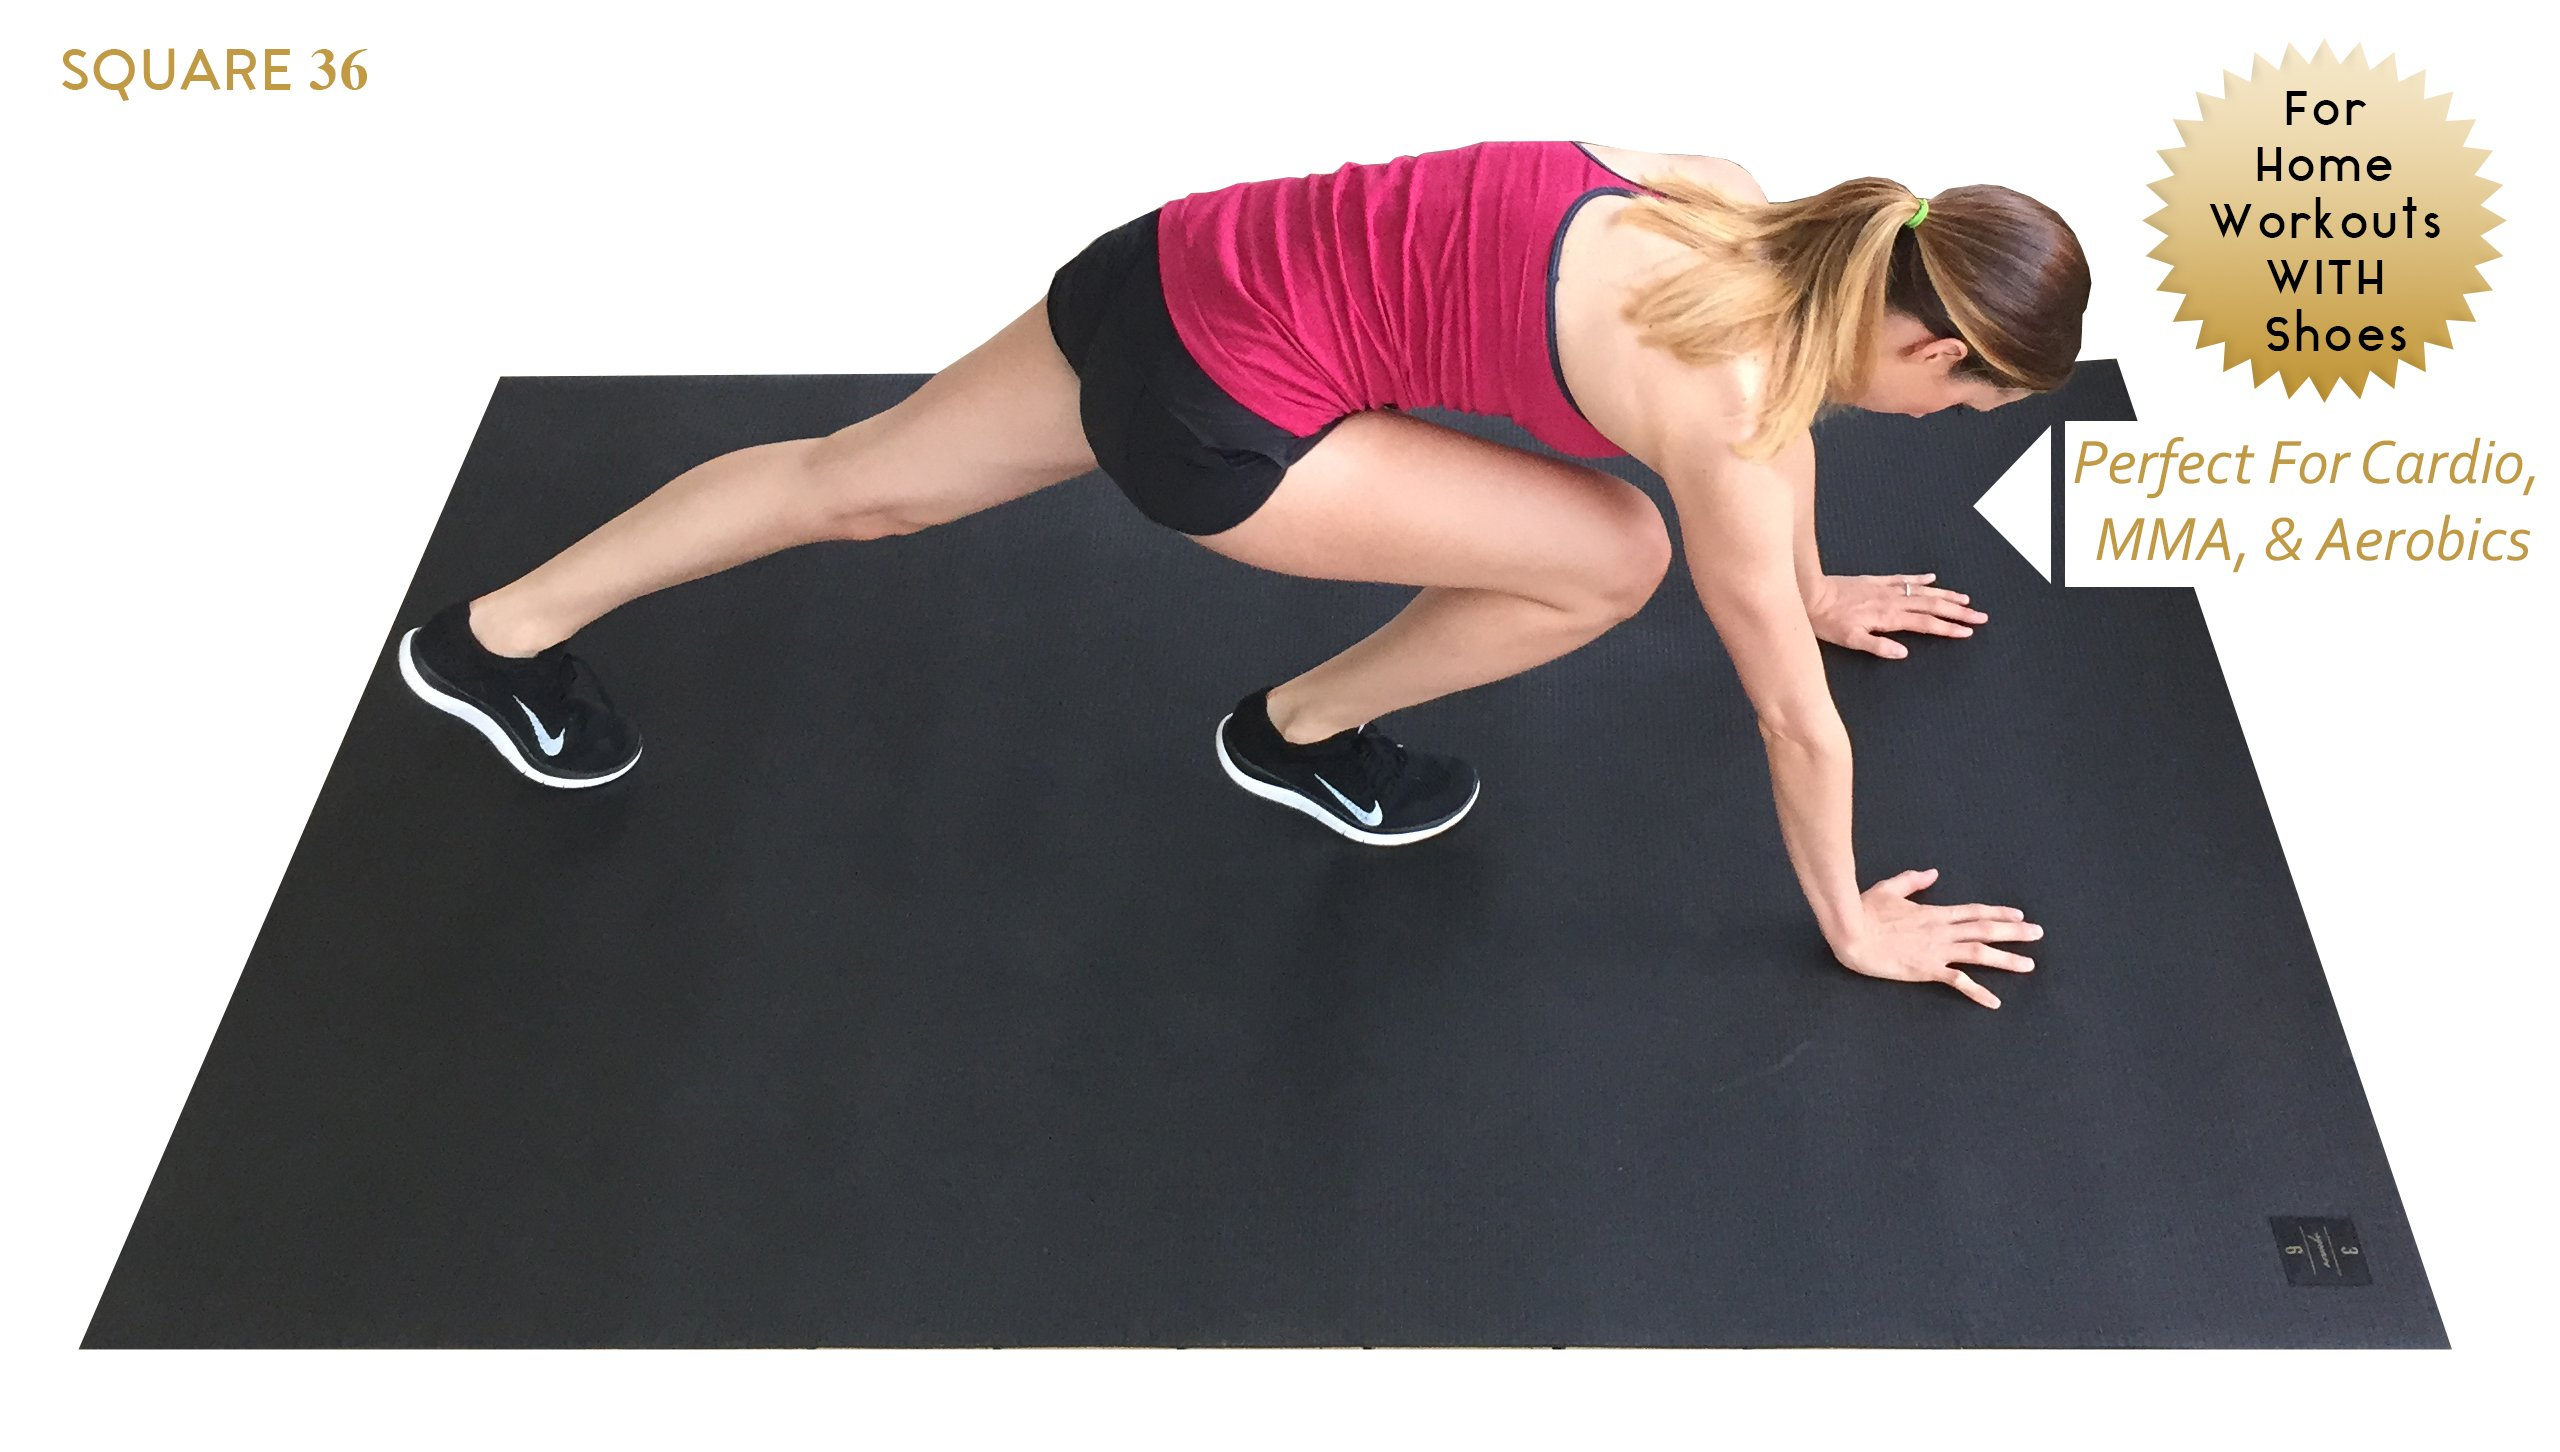 Large Exercise Mat 78'' Long x 48'' Wide (6.5'x4') x 7mm Thick. Includes A Storage Bag and Storage Straps. Perfect For Cardio, Plyometric, MMA, & Aerobic Workouts. Square36 by Square36 (Image #2)